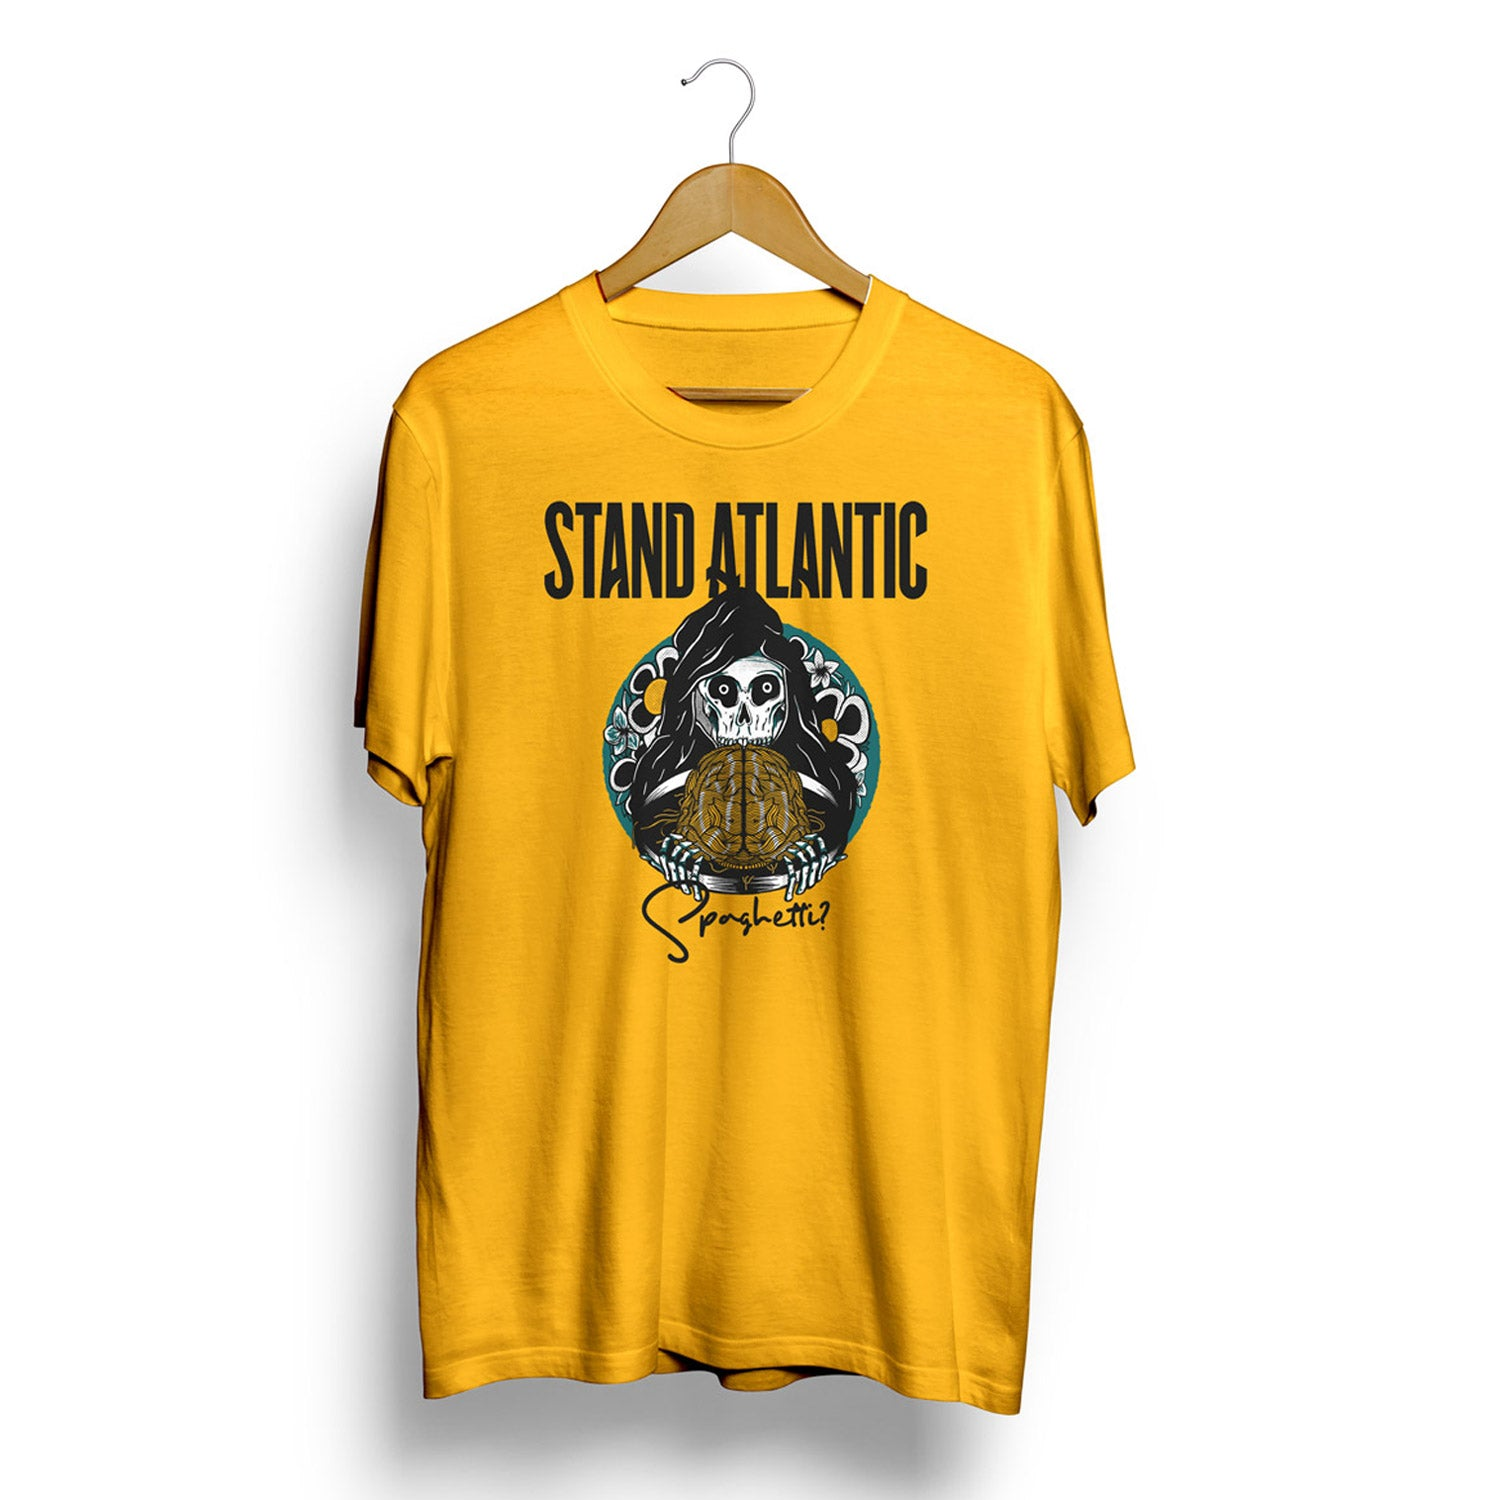 STAND ATLANTIC T-SHIRT